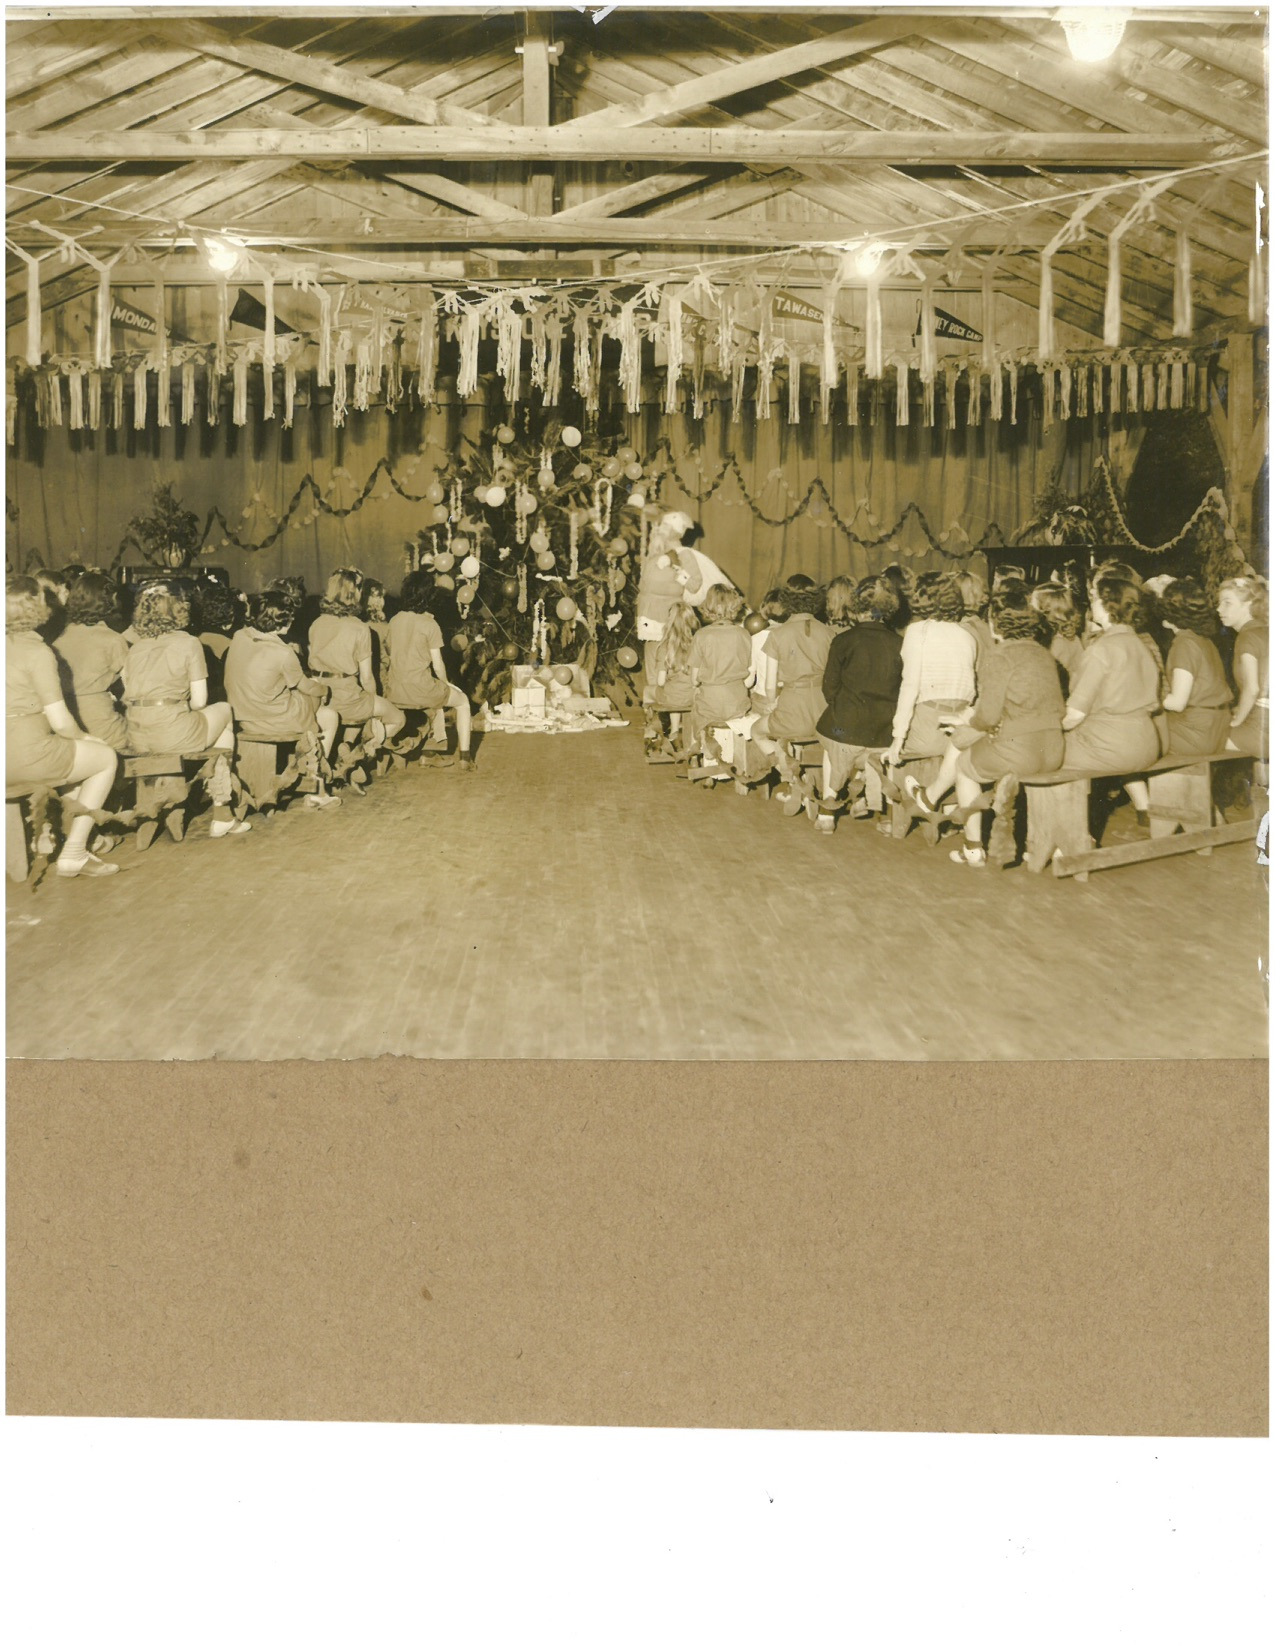 Christmas in July Started at This Girls' Summer Camp in 1935